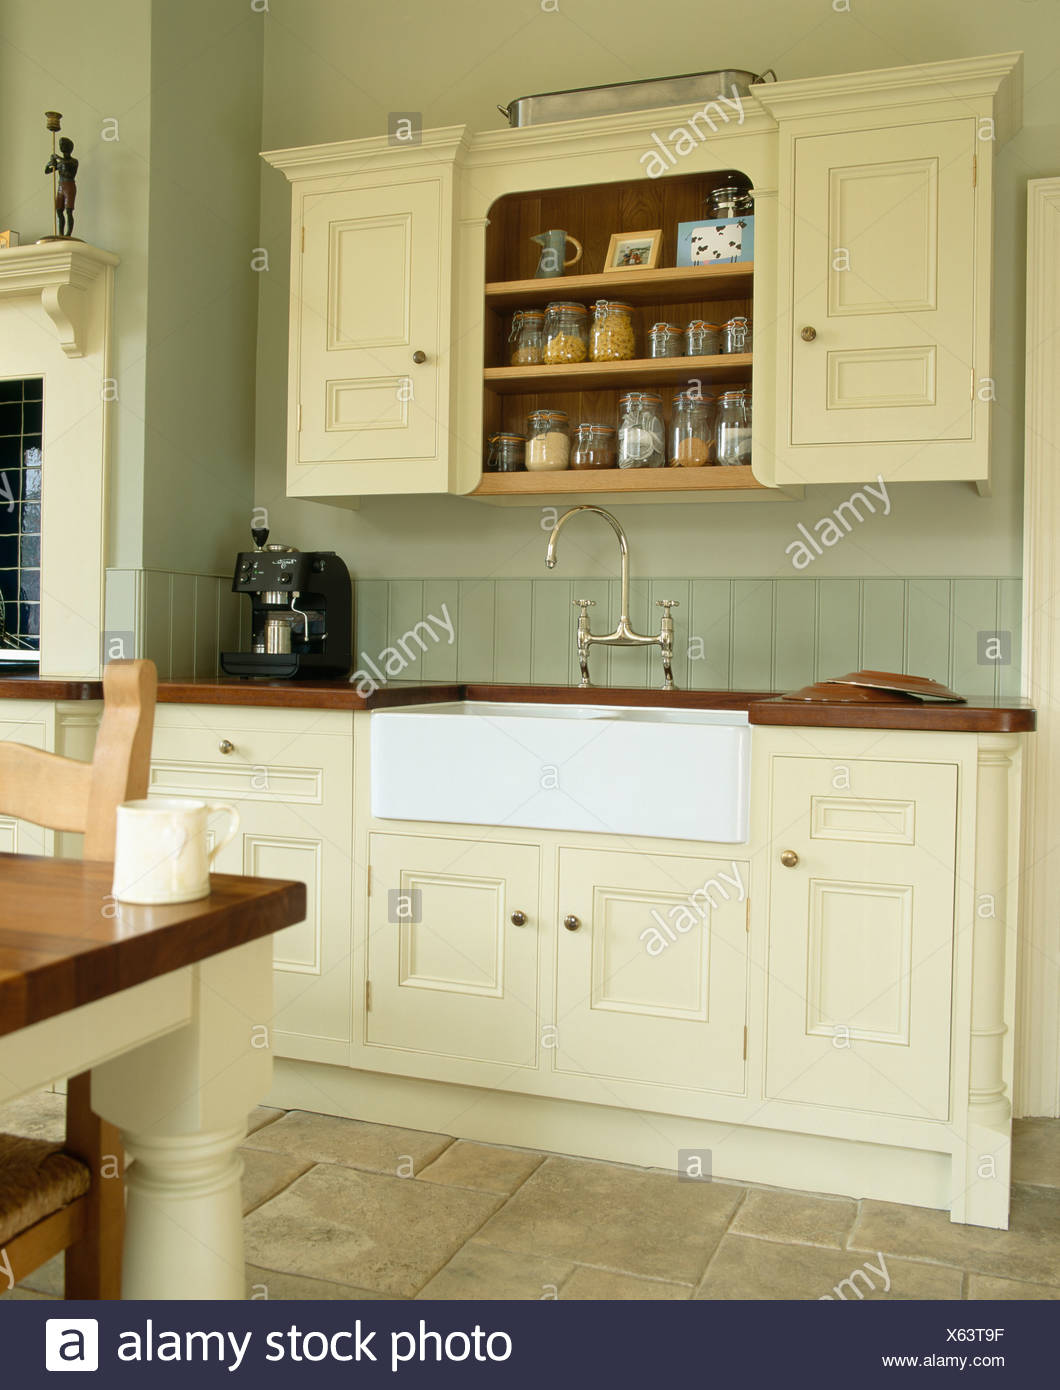 Genial White Belfast Sink In Cream Fitted Unit Below Fitted Wall Cupboard In  Traditional Country Kitchen Painted In Farrow+Ball Paint